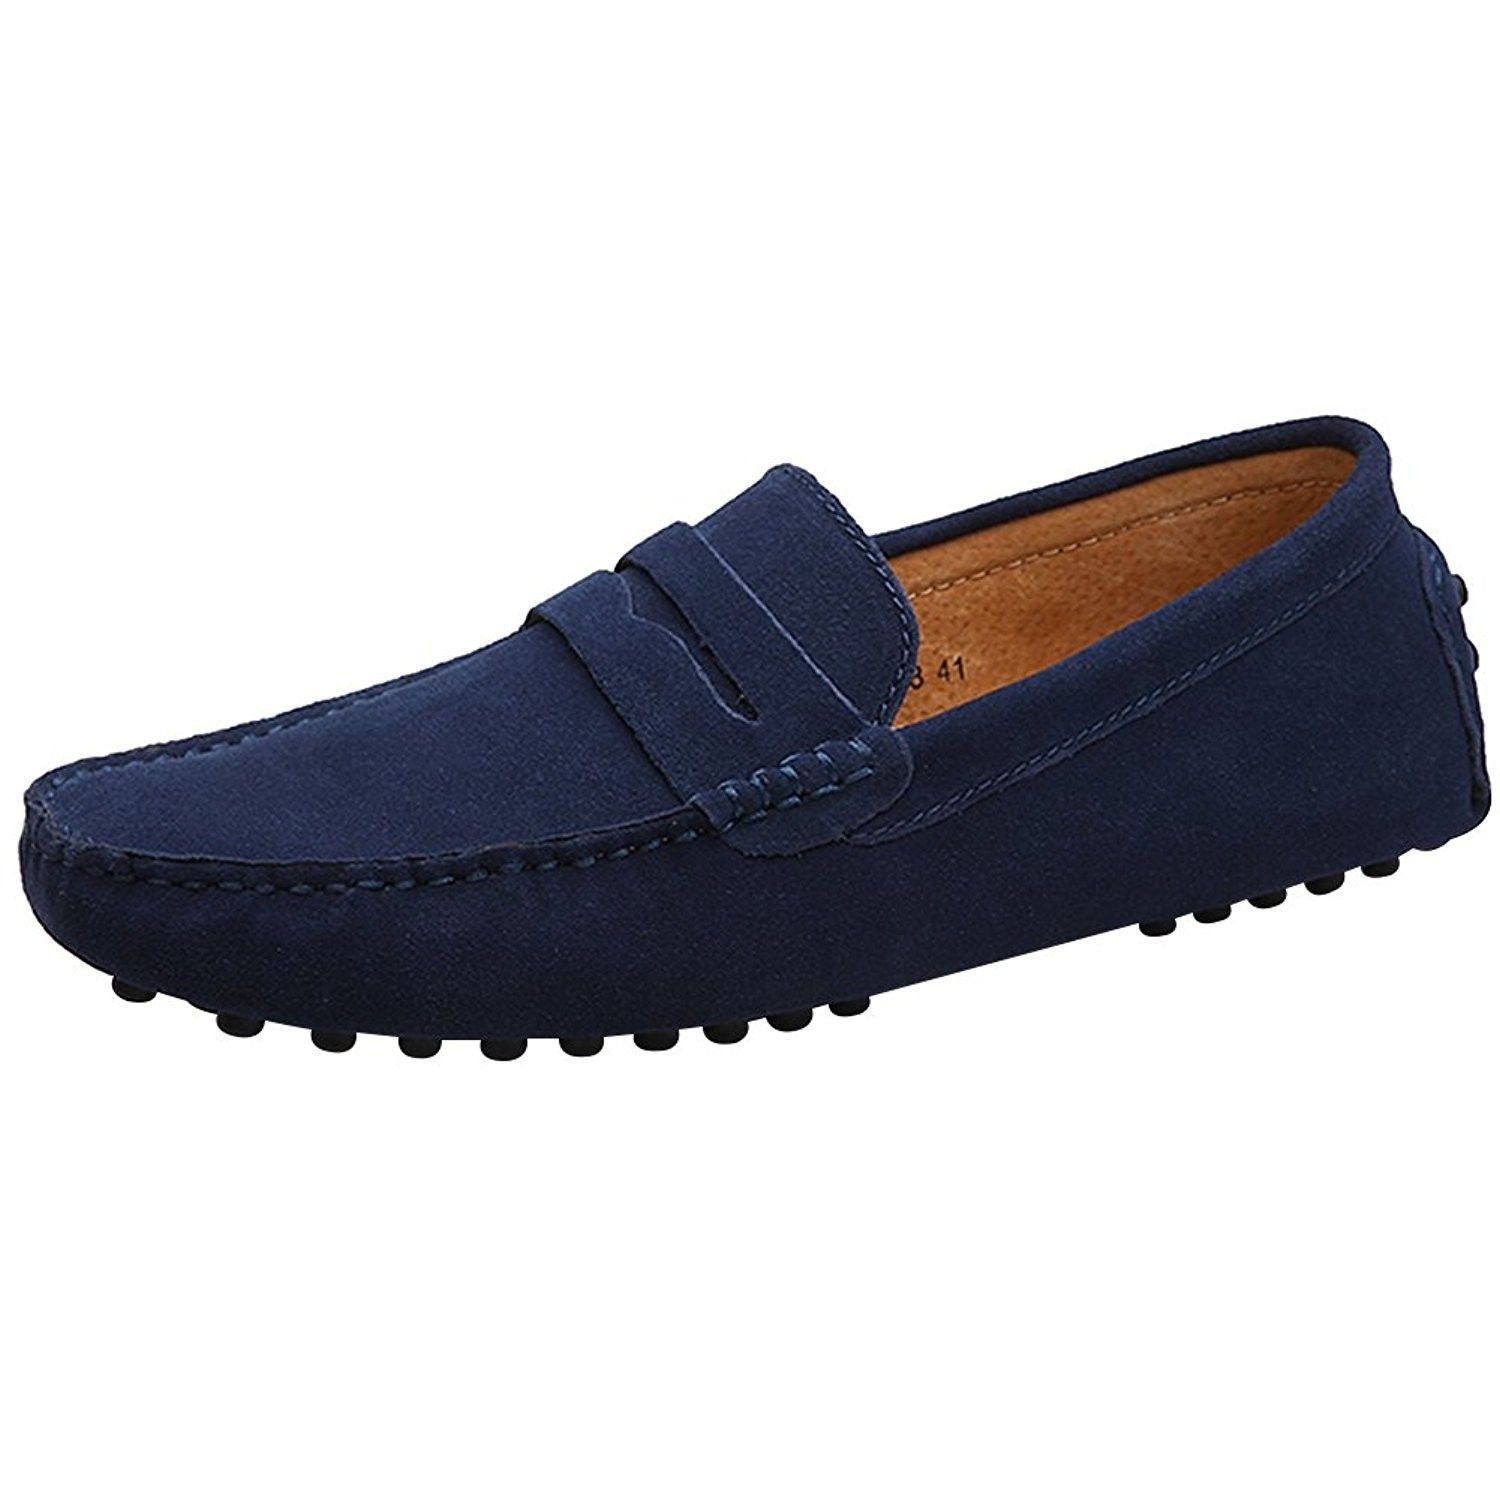 New Mens Casual Driving Loafers Suede Leather Moccasins Slip on Shoes Big Size